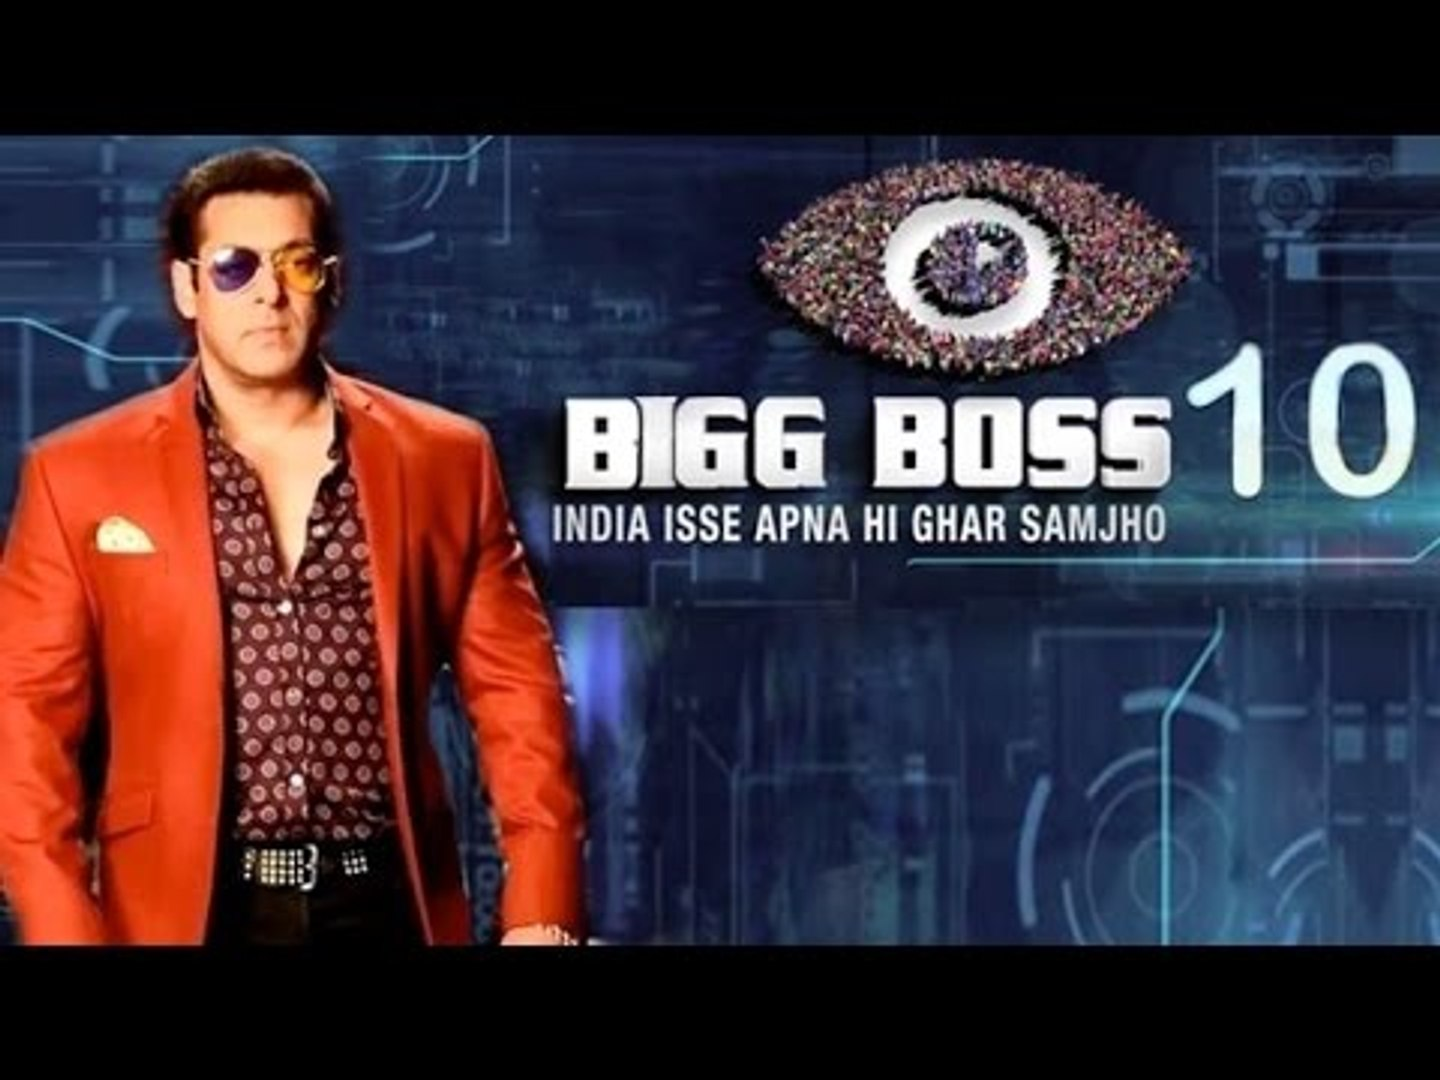 Bigg Boss 10 - Salman Khan Trailer Out